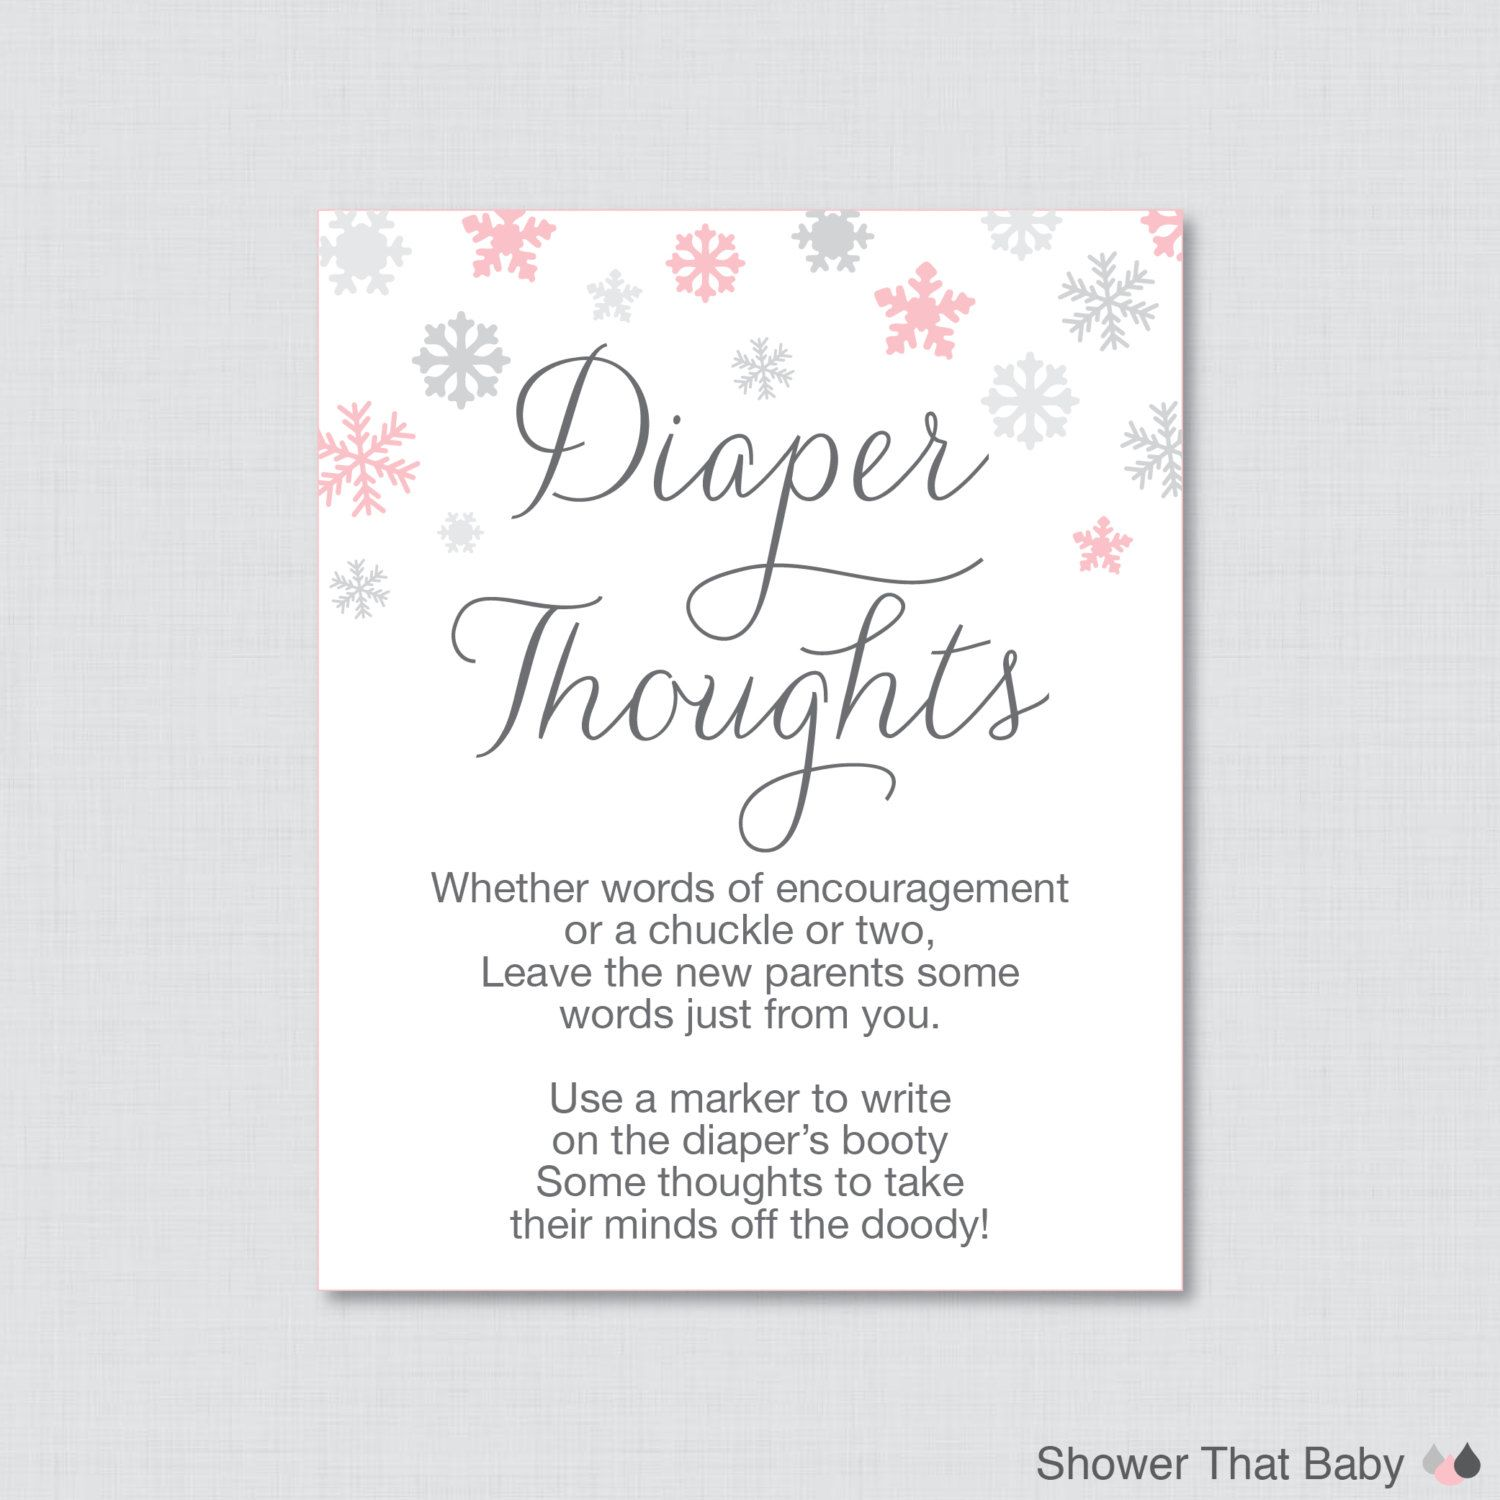 Winter Baby Shower Diaper Thoughts Game   Printable Download   Write On  Diaper Words For Wee Hours Pink And Gray Snowflakes   0004 P